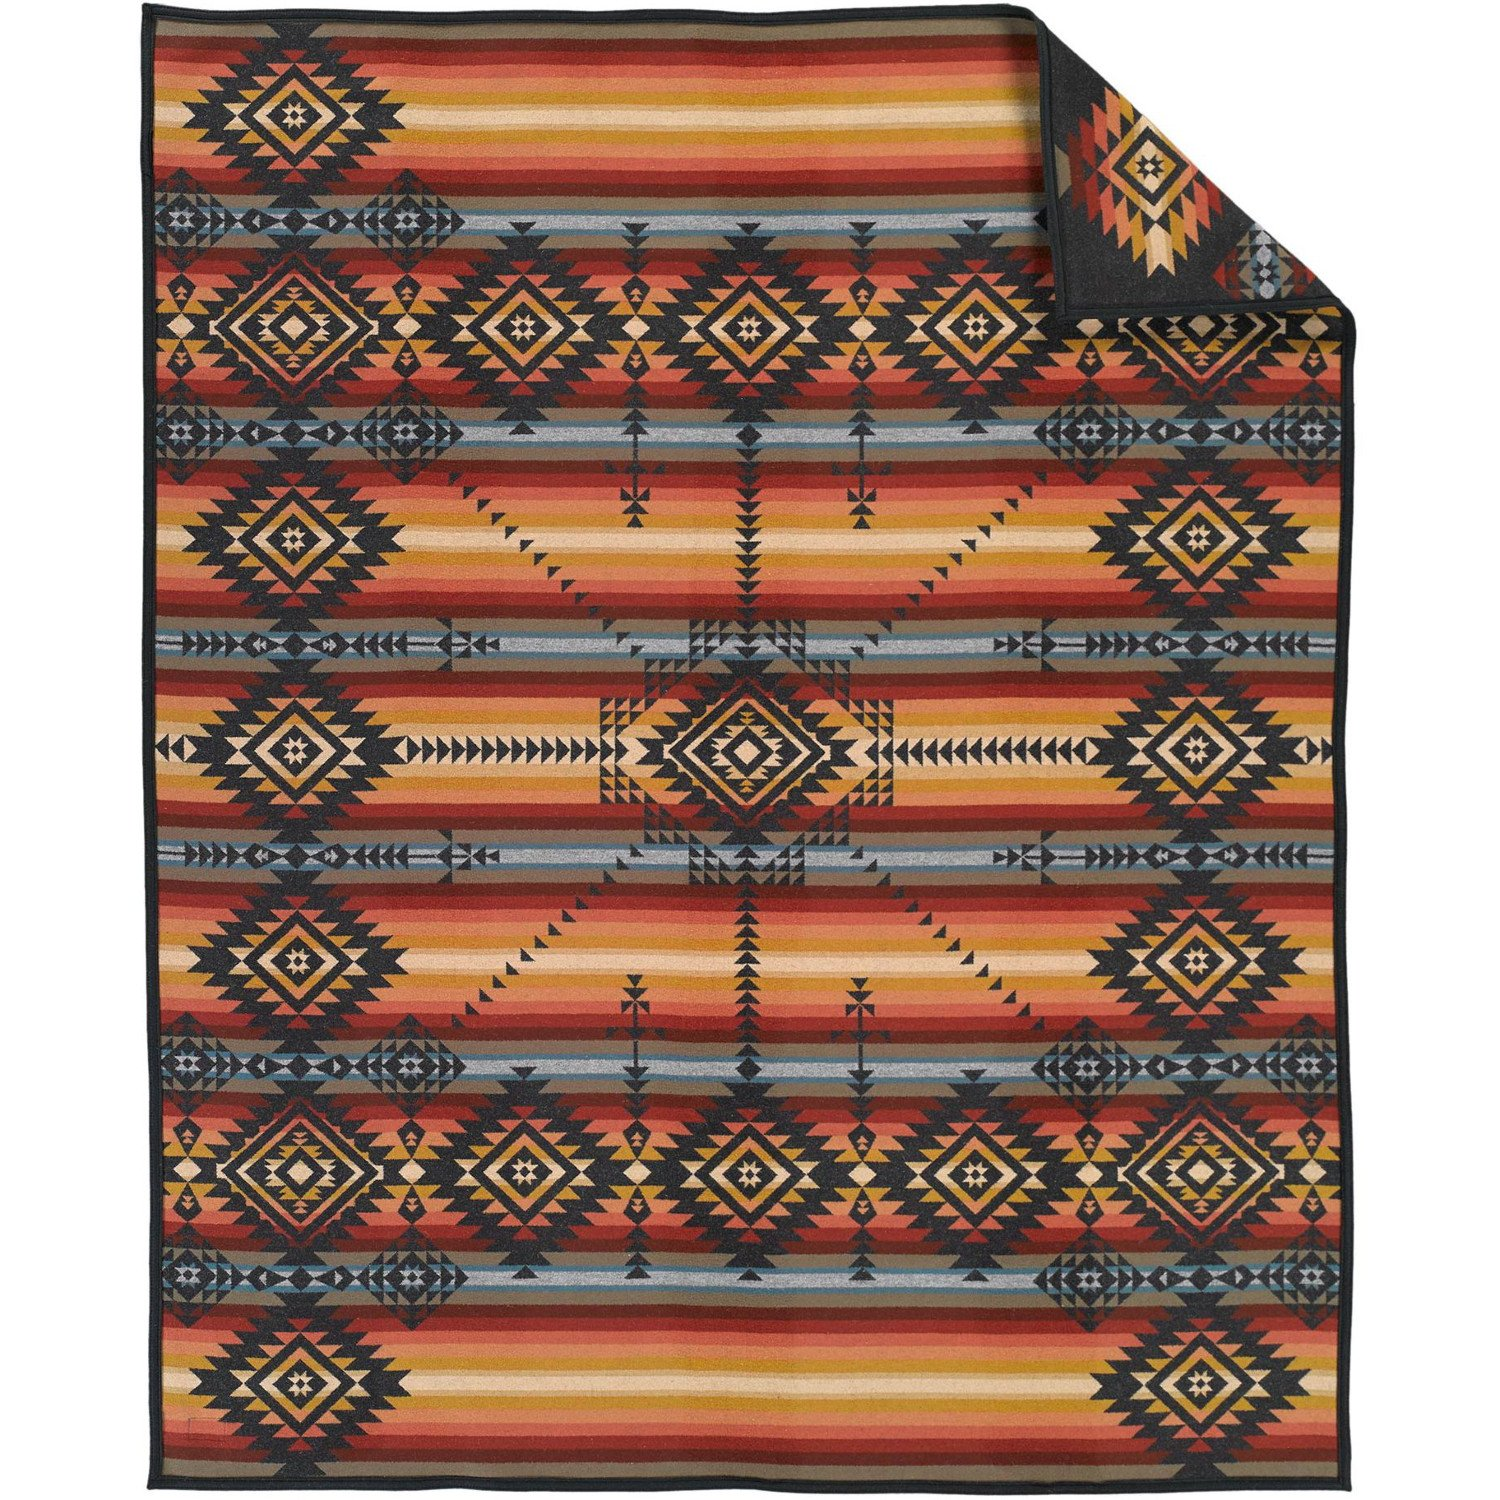 Pendleton Heritage Collection Robe Blanket One Size Dark Charcoal by Pendleton (Image #2)